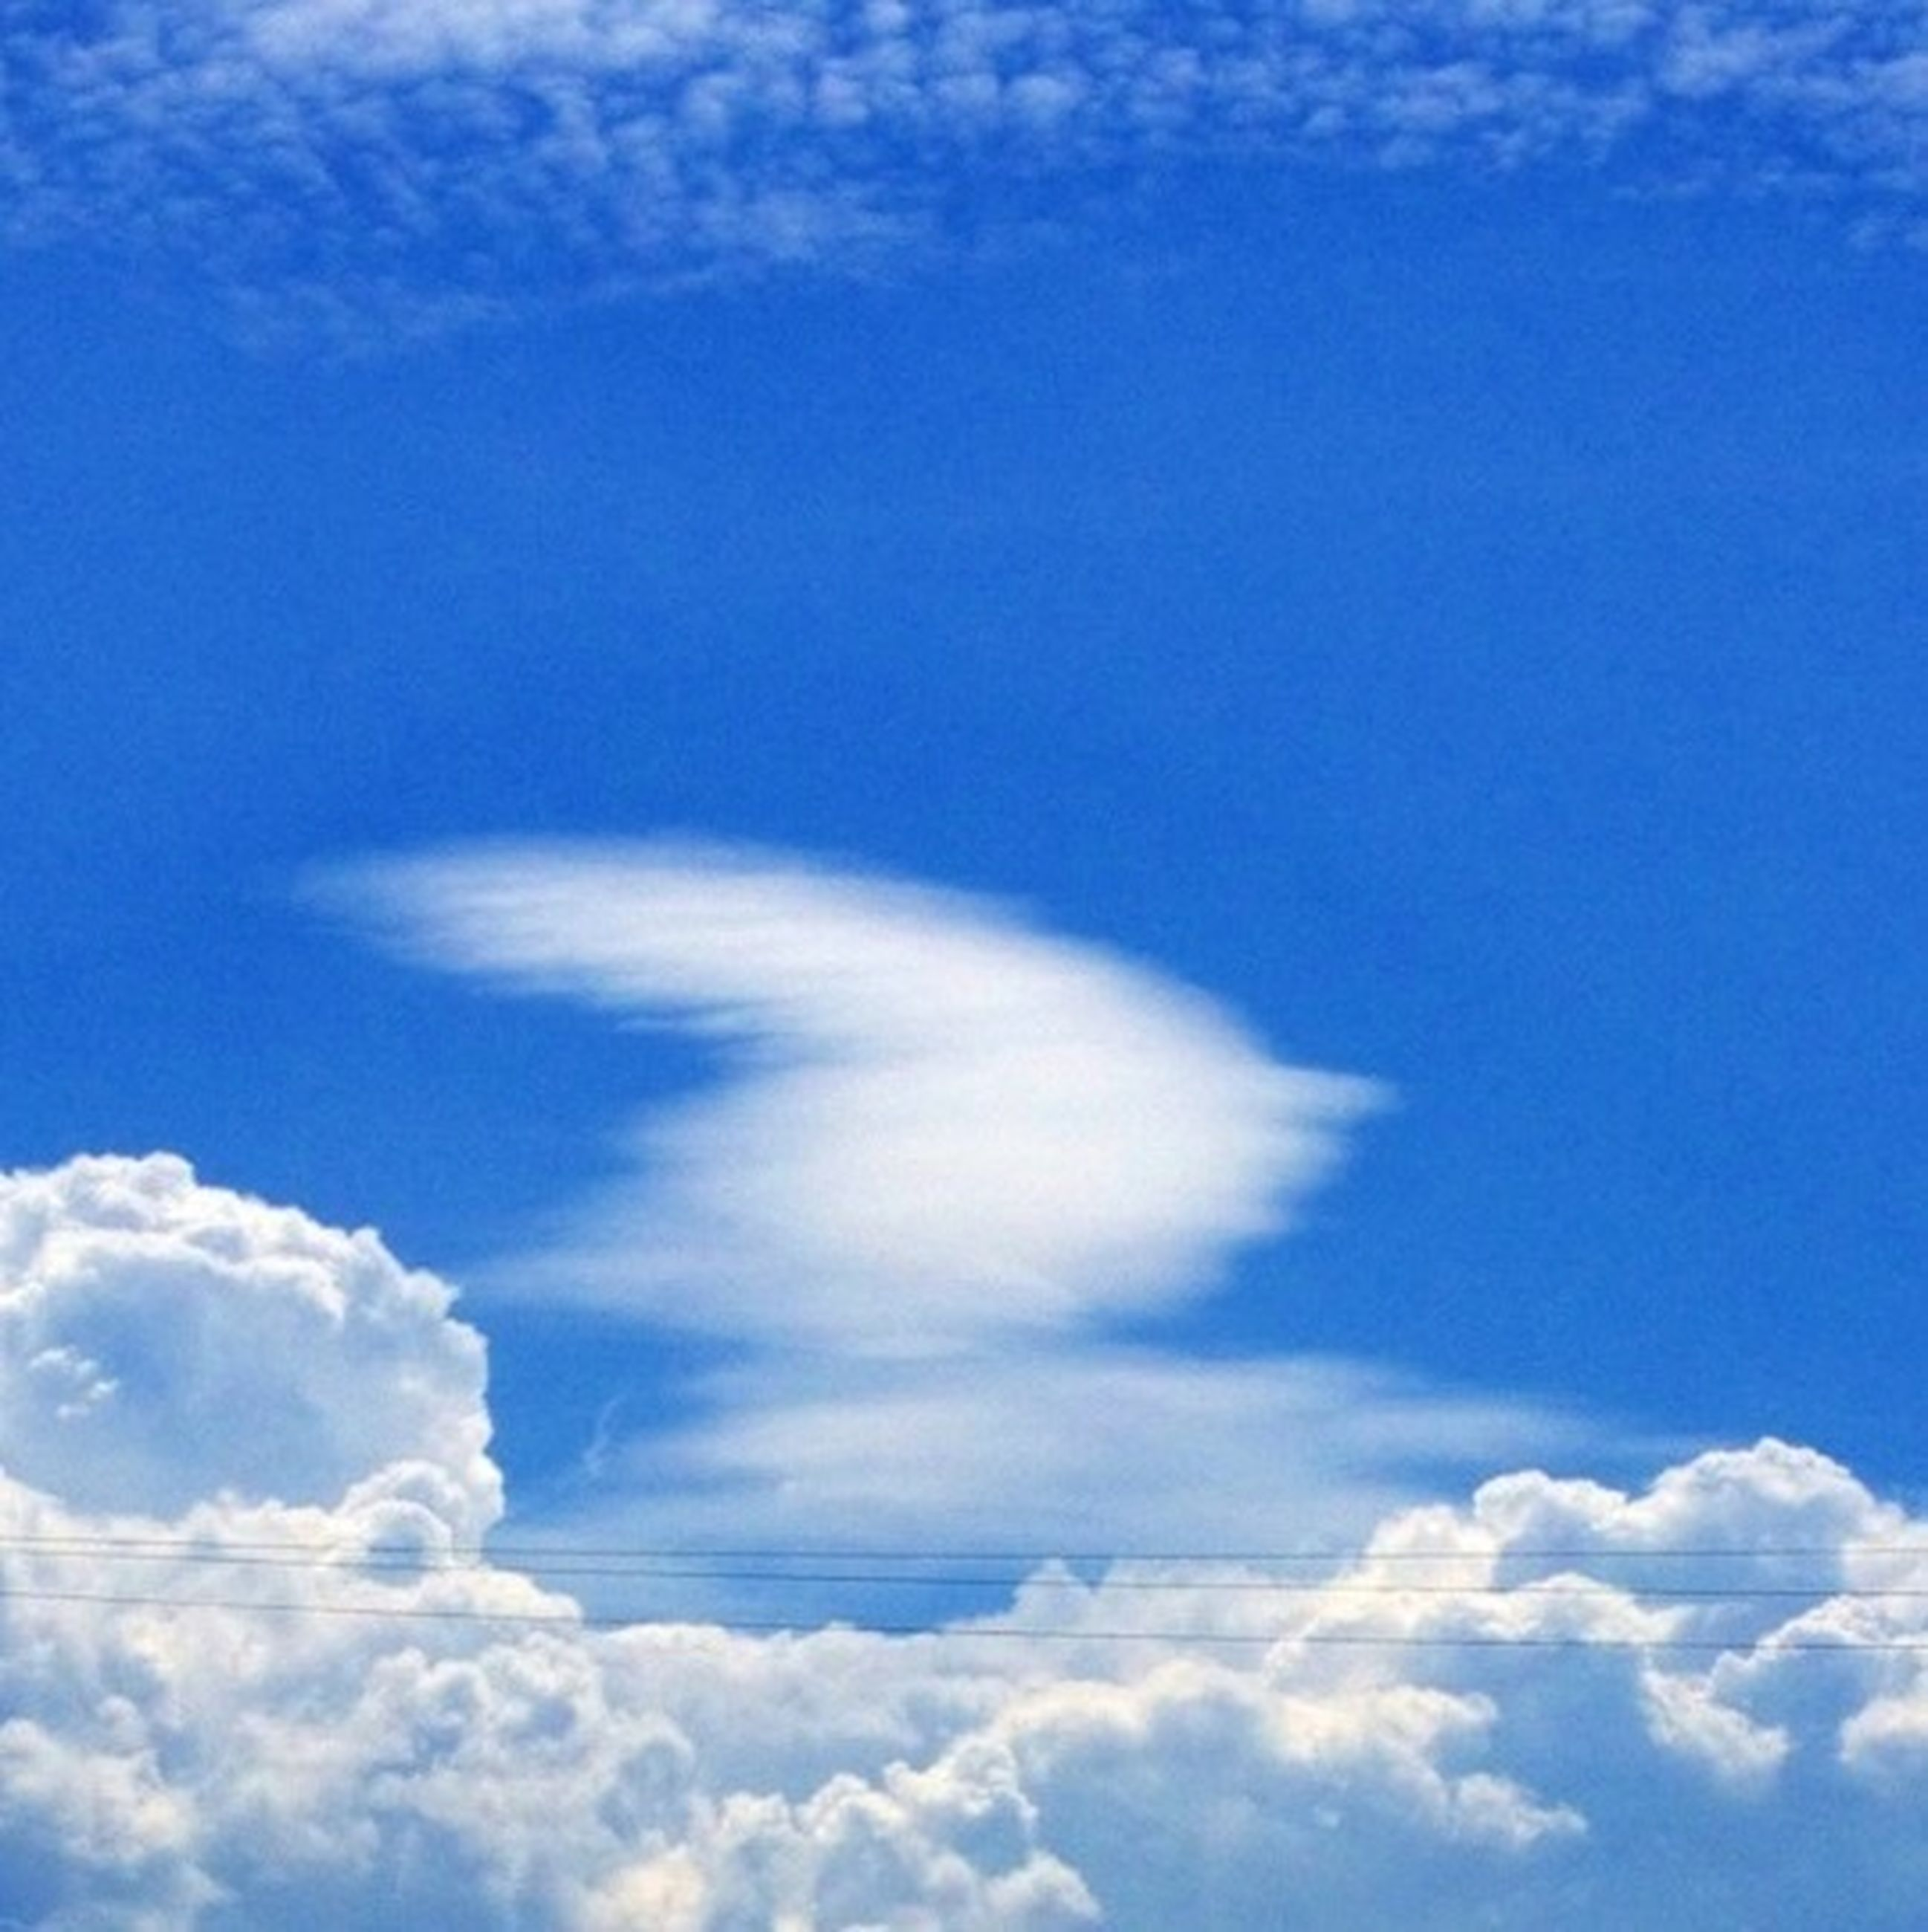 sky, blue, low angle view, cloud - sky, beauty in nature, sky only, tranquility, scenics, cloudscape, cloud, nature, tranquil scene, cloudy, white color, idyllic, fluffy, day, backgrounds, outdoors, white